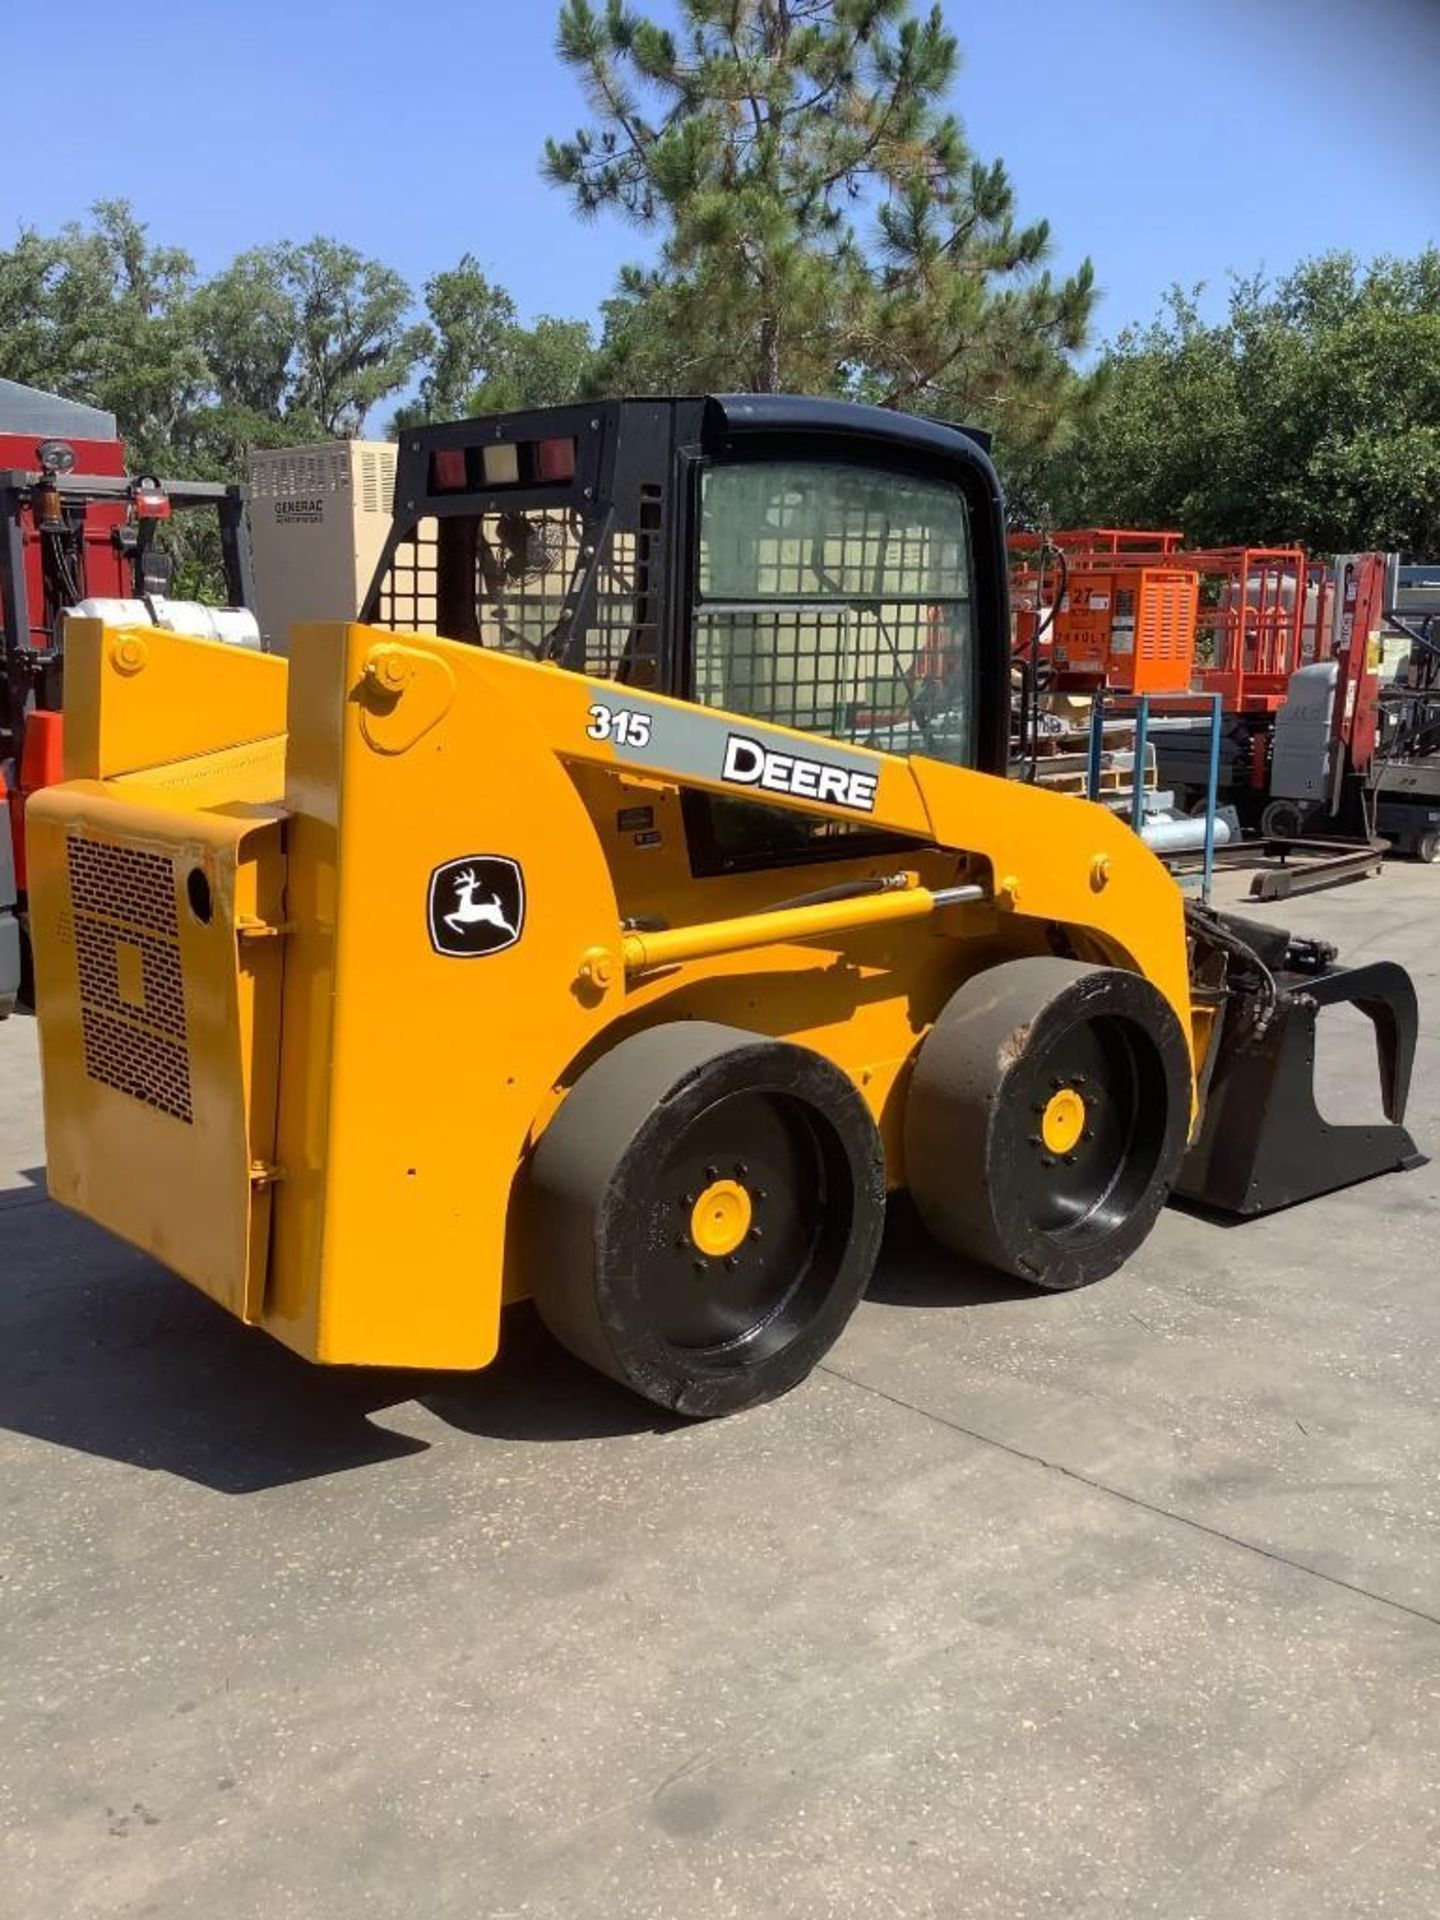 JOHN DEERE SKIDSTEER MODEL 315, DIESEL, GRAPPLE ATTACHMENT, SOLID TIRES, AUX HYDRAULIC, ENCLOSED CAB - Image 4 of 15